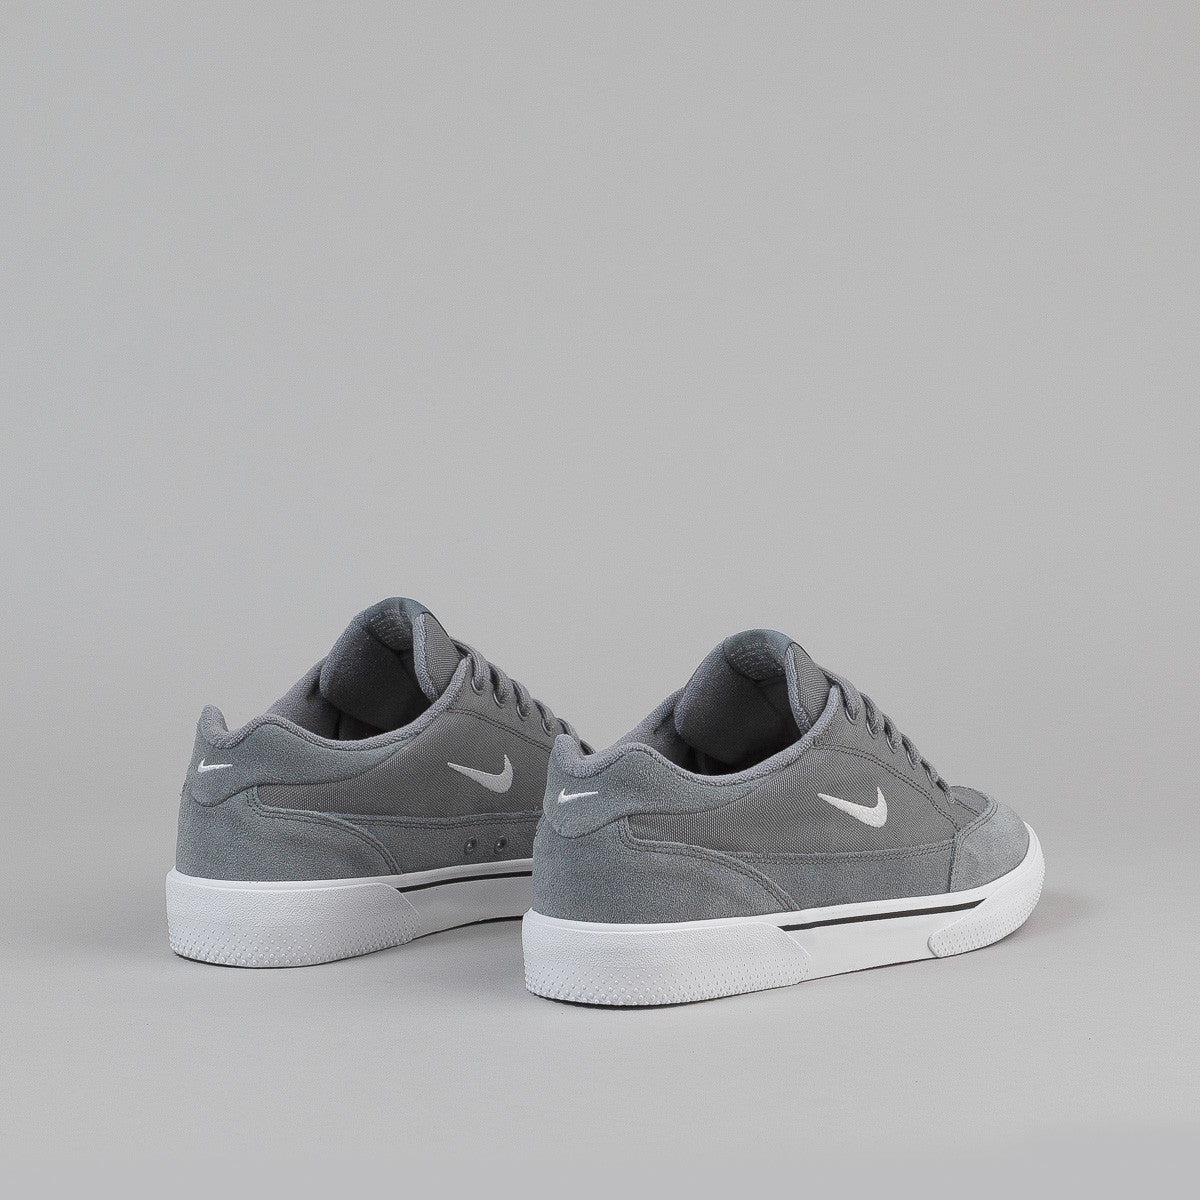 Nike SB Zoom GTS Shoes - Cool Grey / White